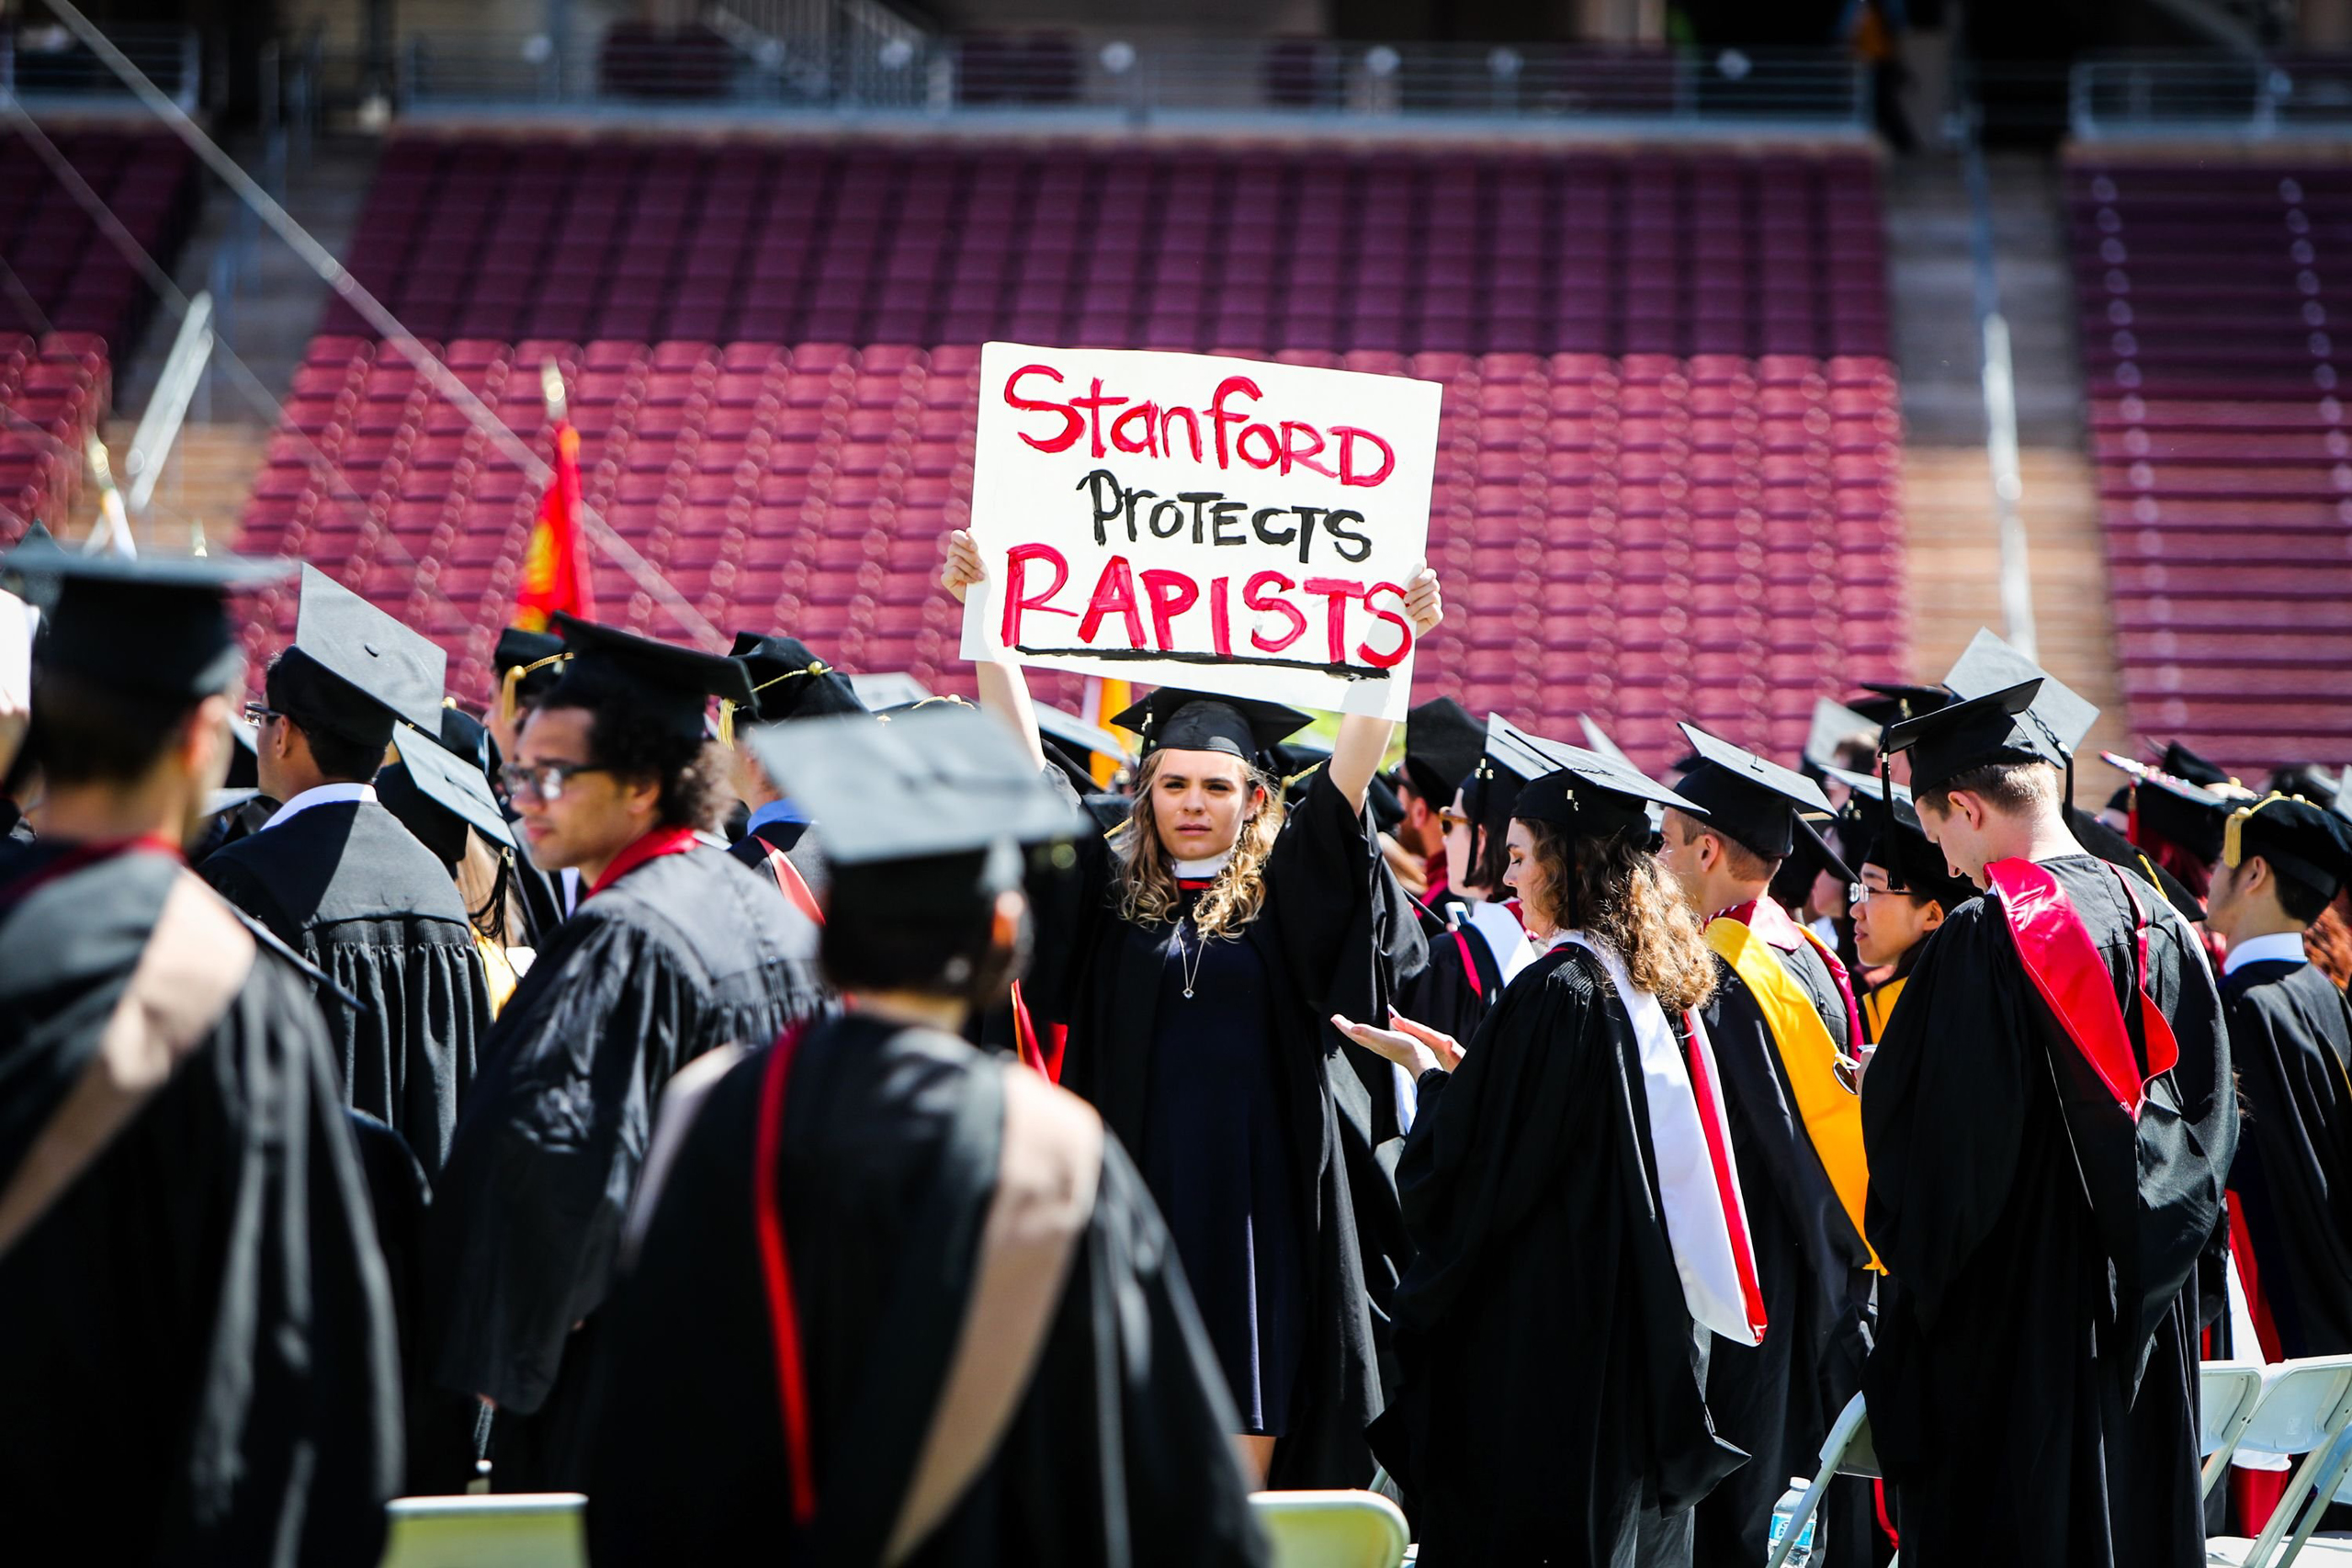 A woman carries a sign in solidarity for a Stanford rape victim during graduation at Stanford University, in Palo Alto, Calif. on June 12, 2016.